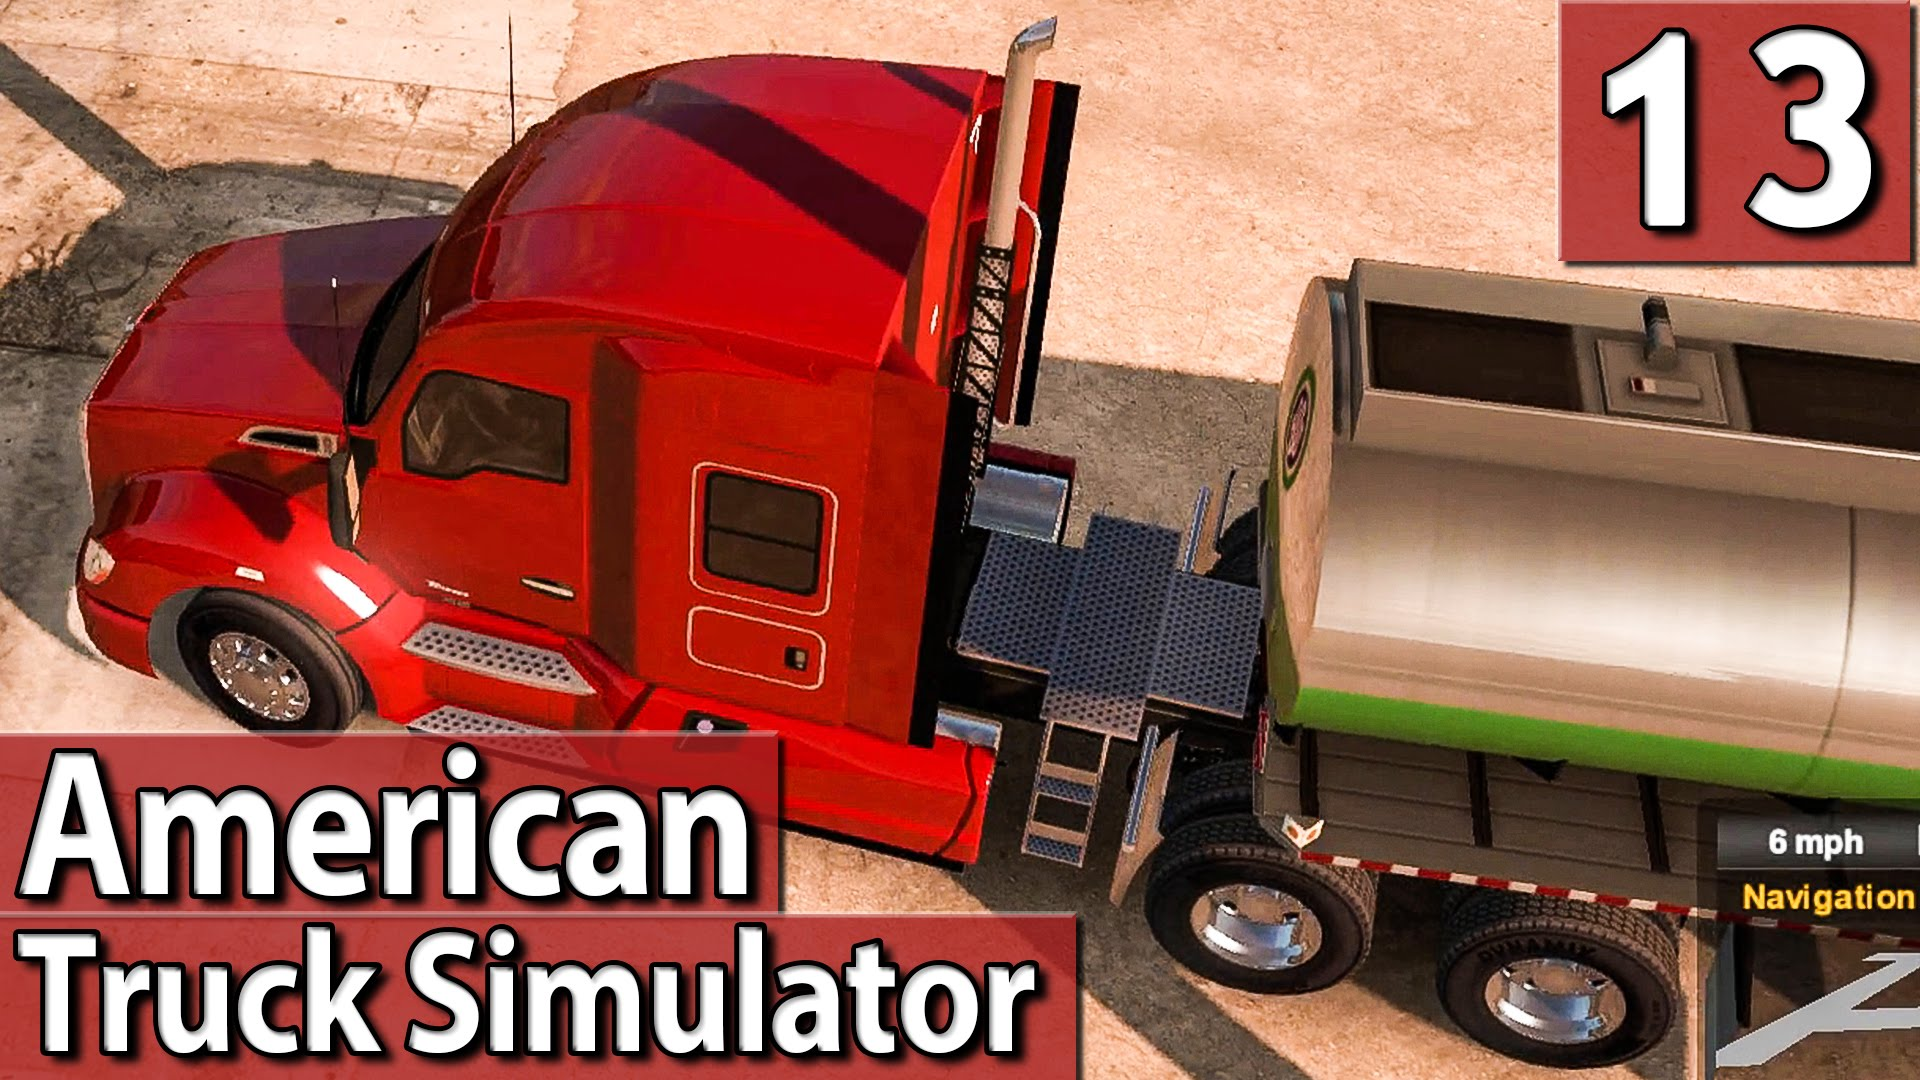 AMERICAN-TRUCK-SIMULATOR-13-A-long-Vehikel-PlayTest-deutsch-attachment